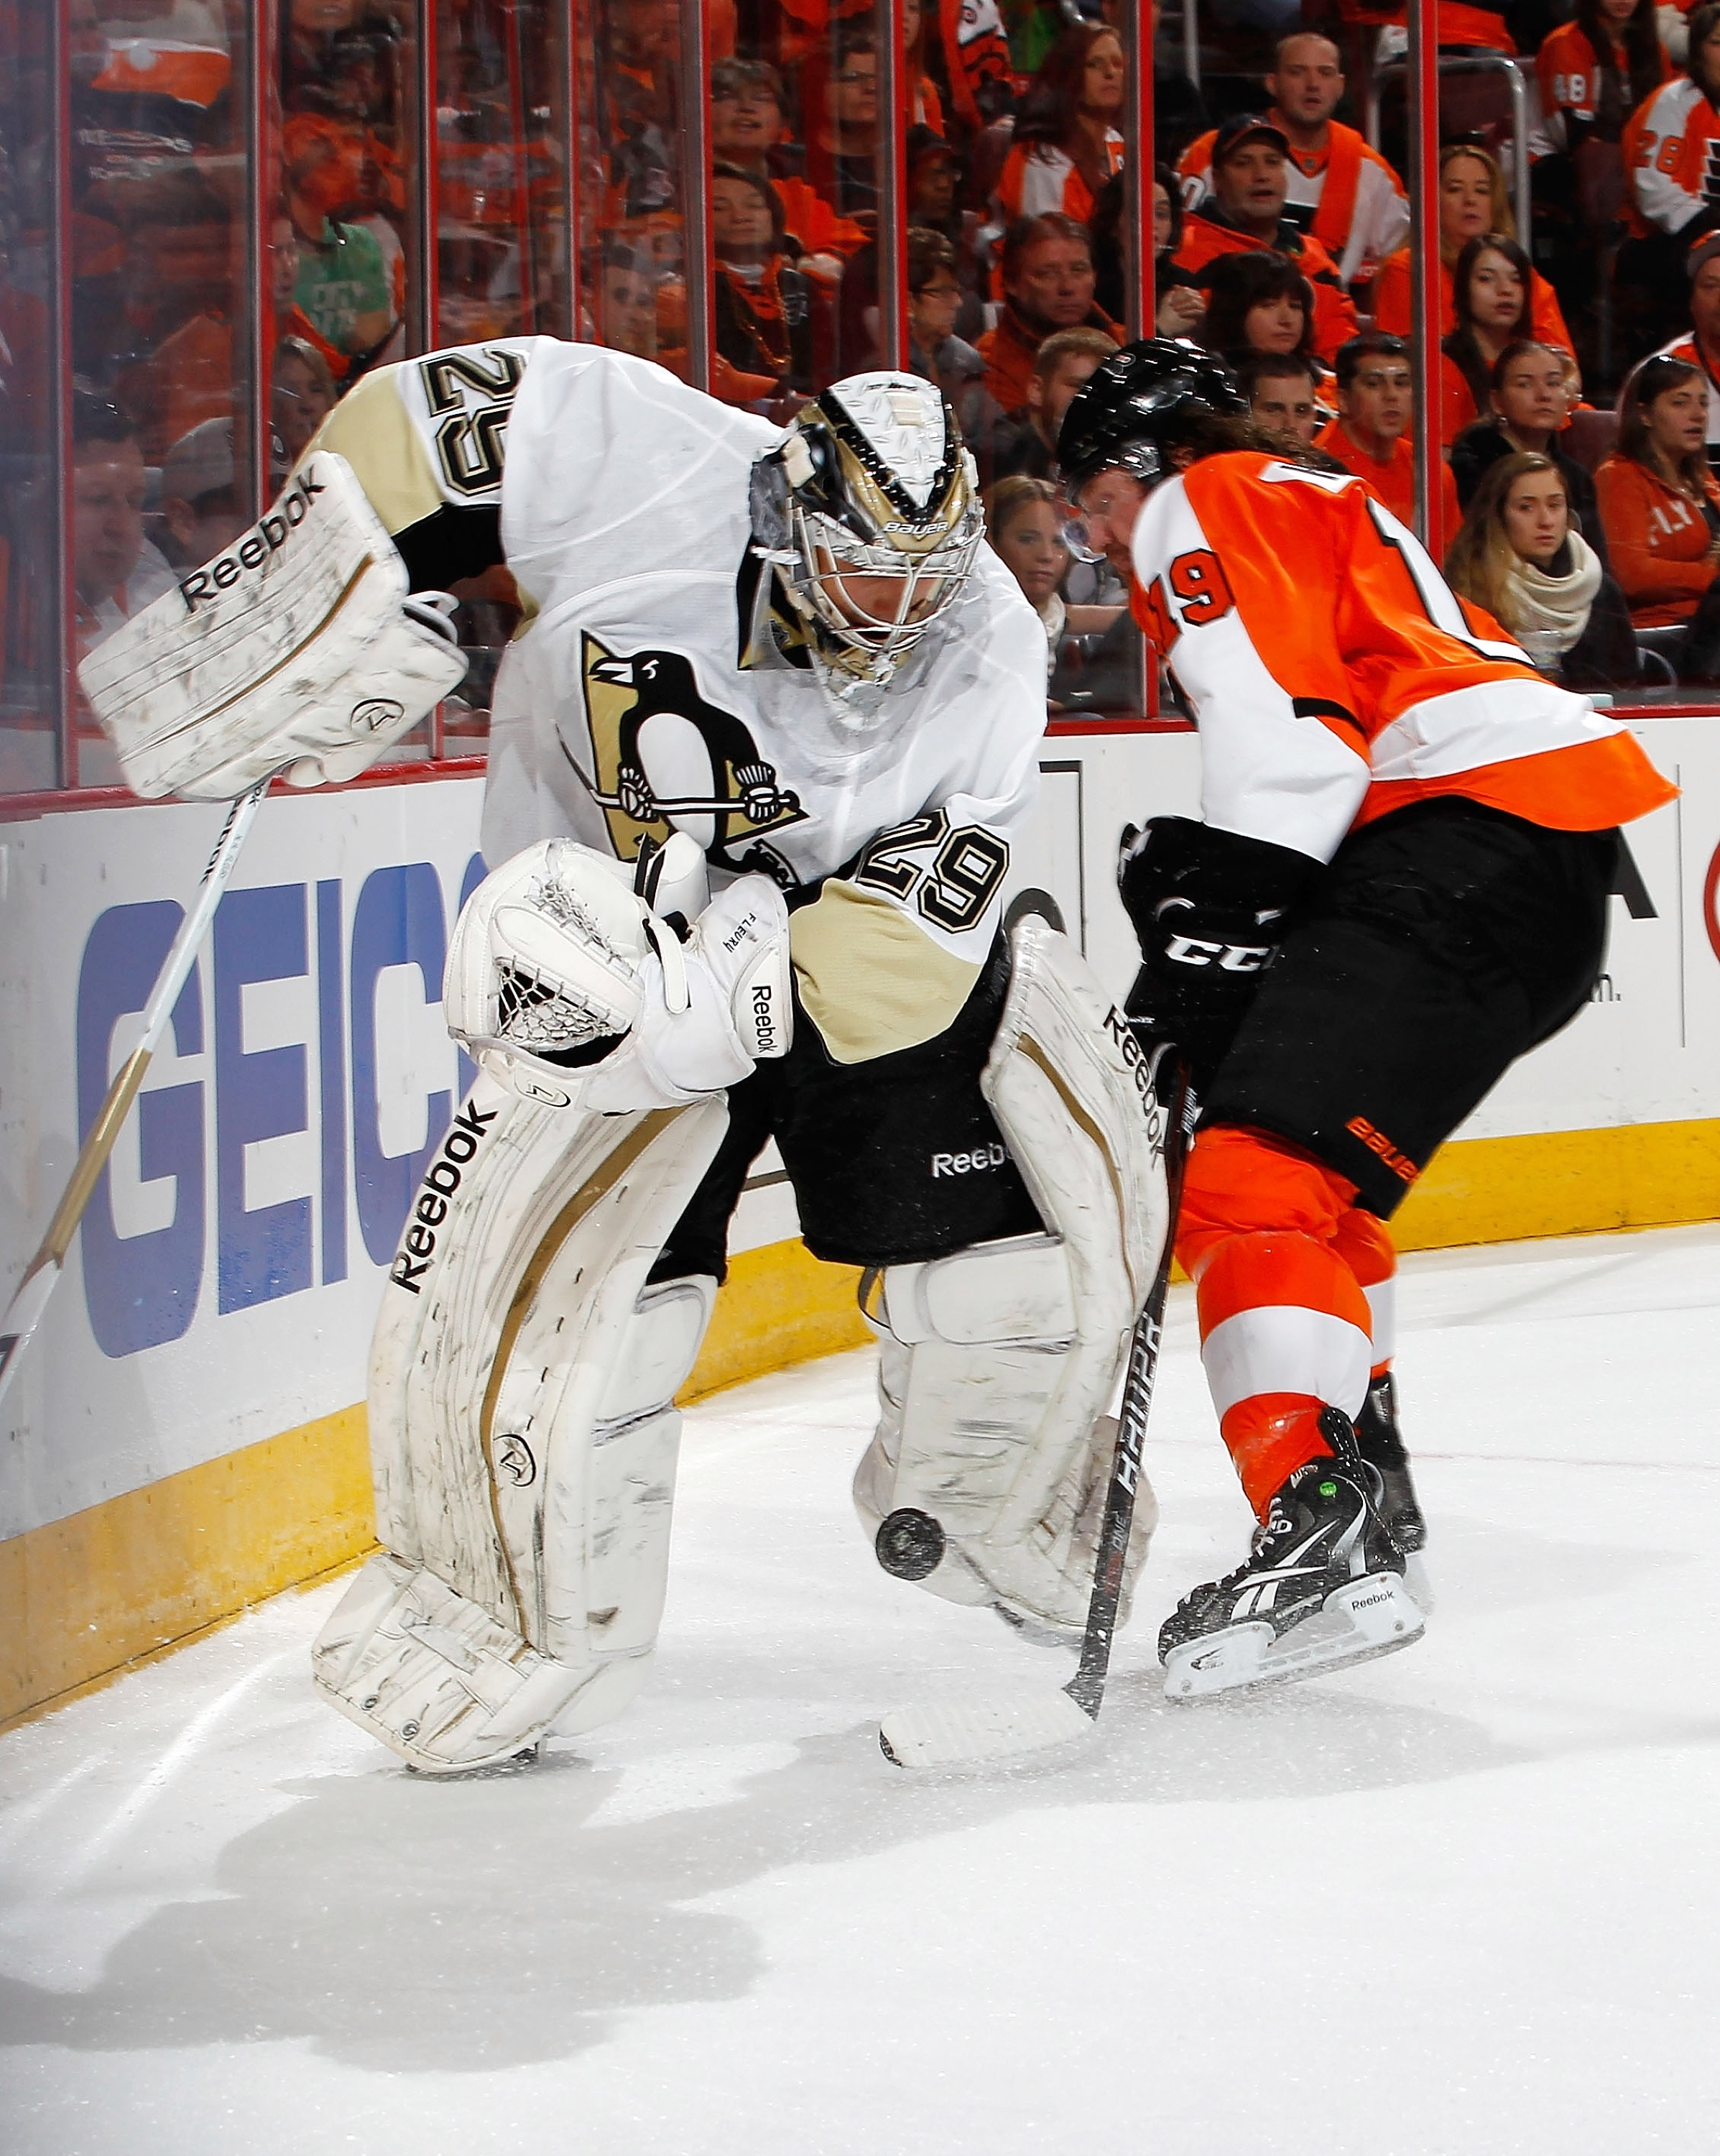 Marc-Andre Fleury tries to clear the puck in front of Scott Hartnell. (Getty Images)